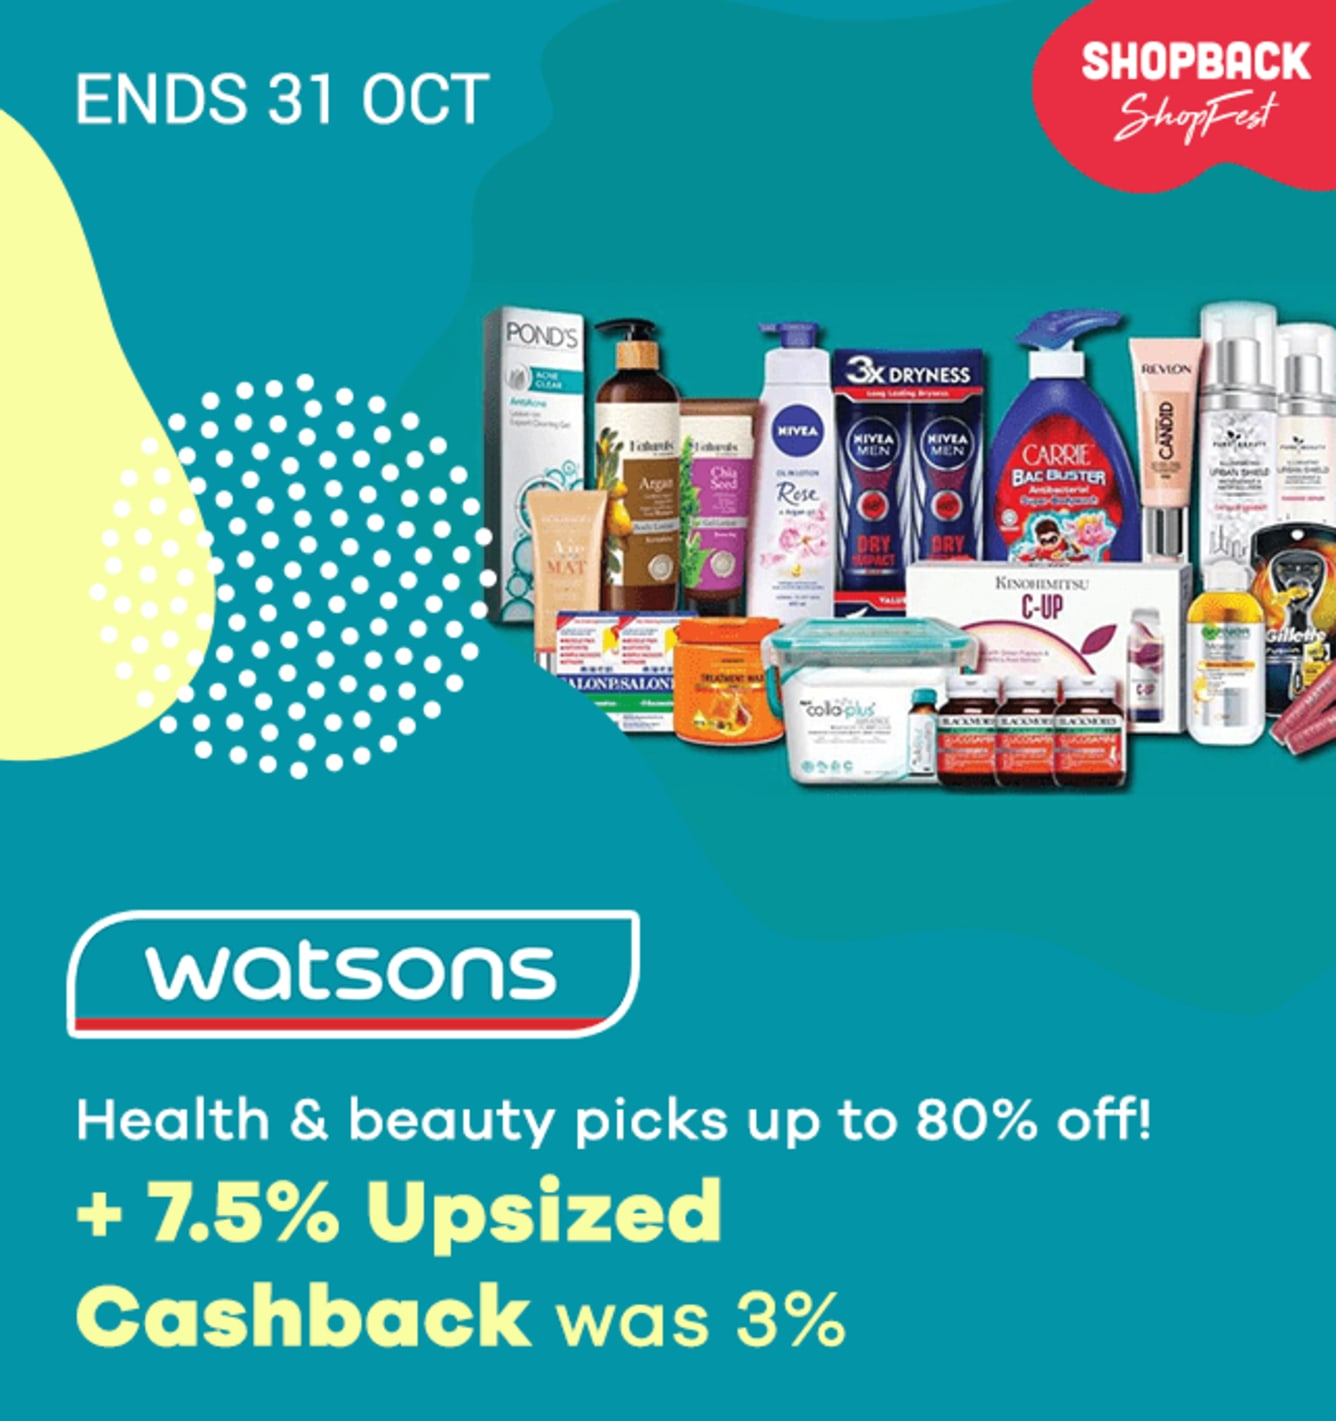 Watsons 7.5% Upsized Cashback ShopFest